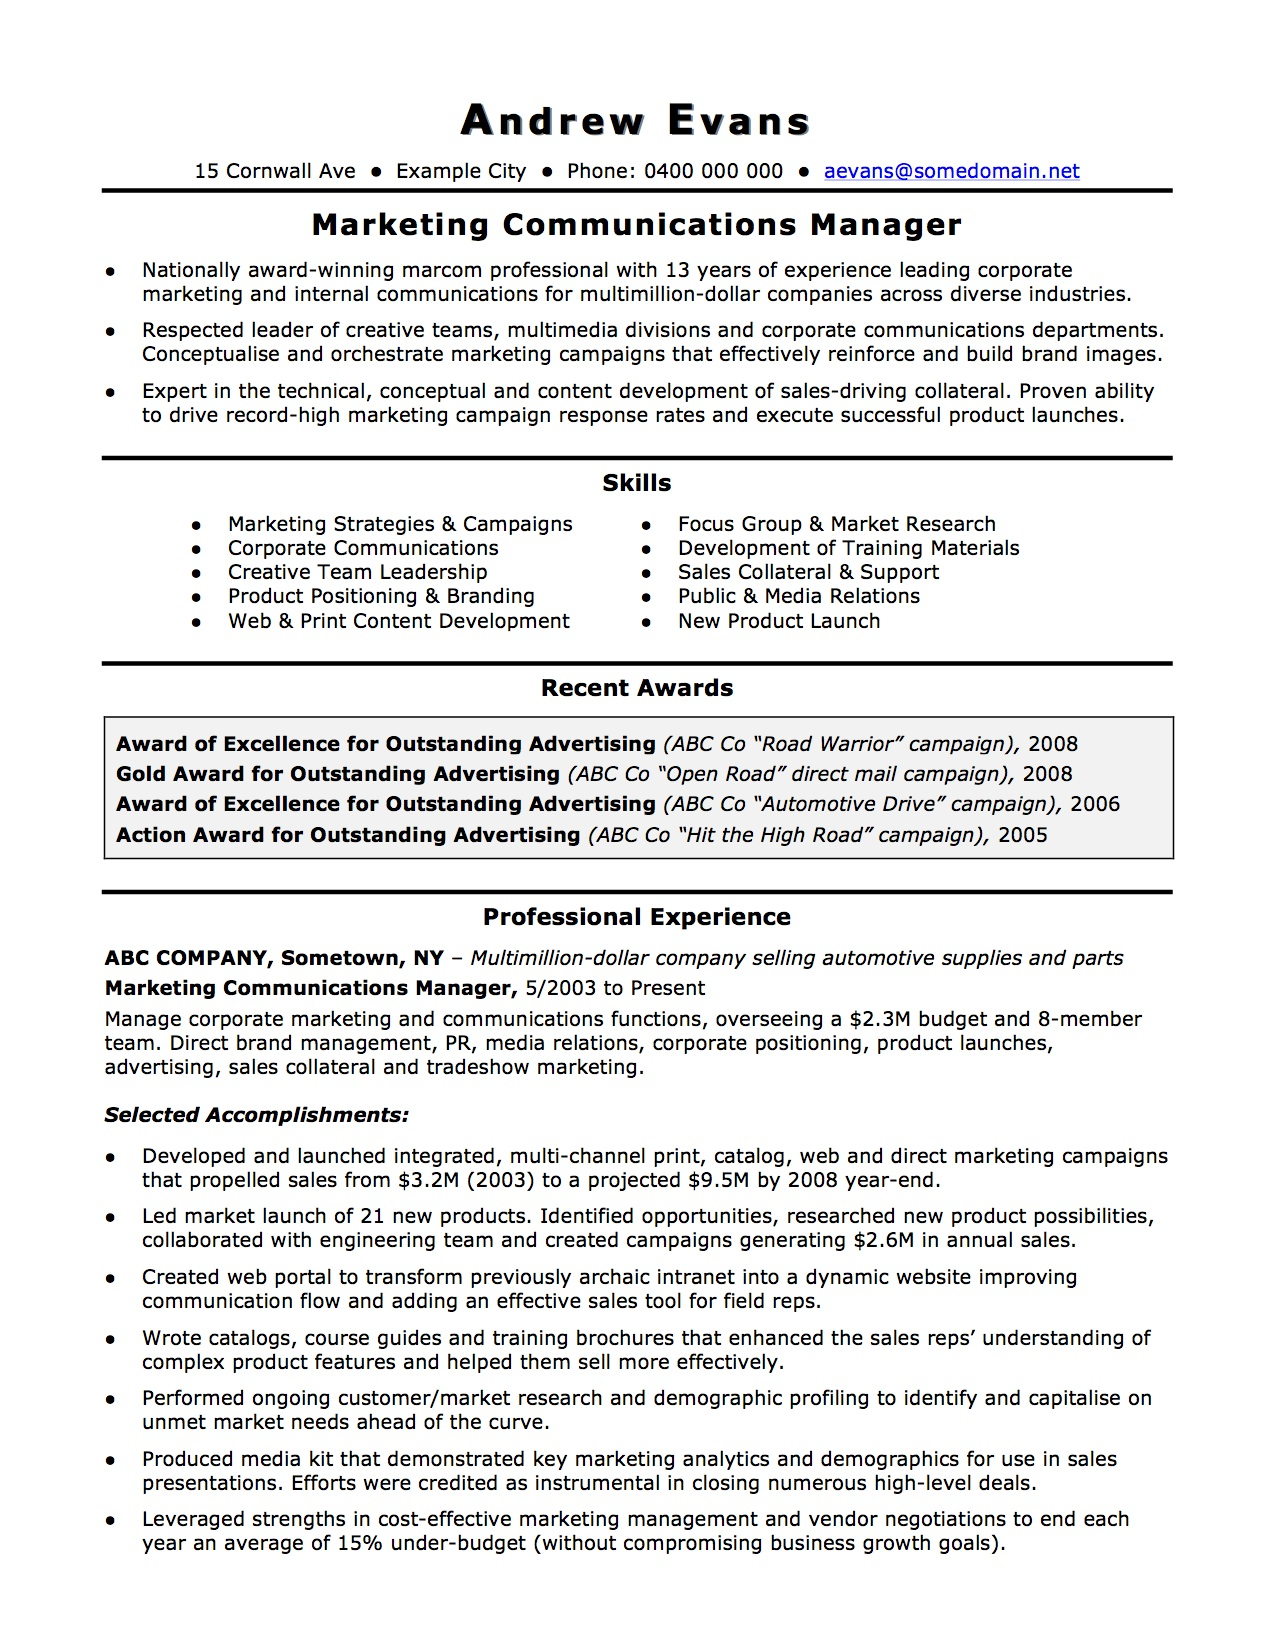 Resume Opening Statement. business letters format professional way ...